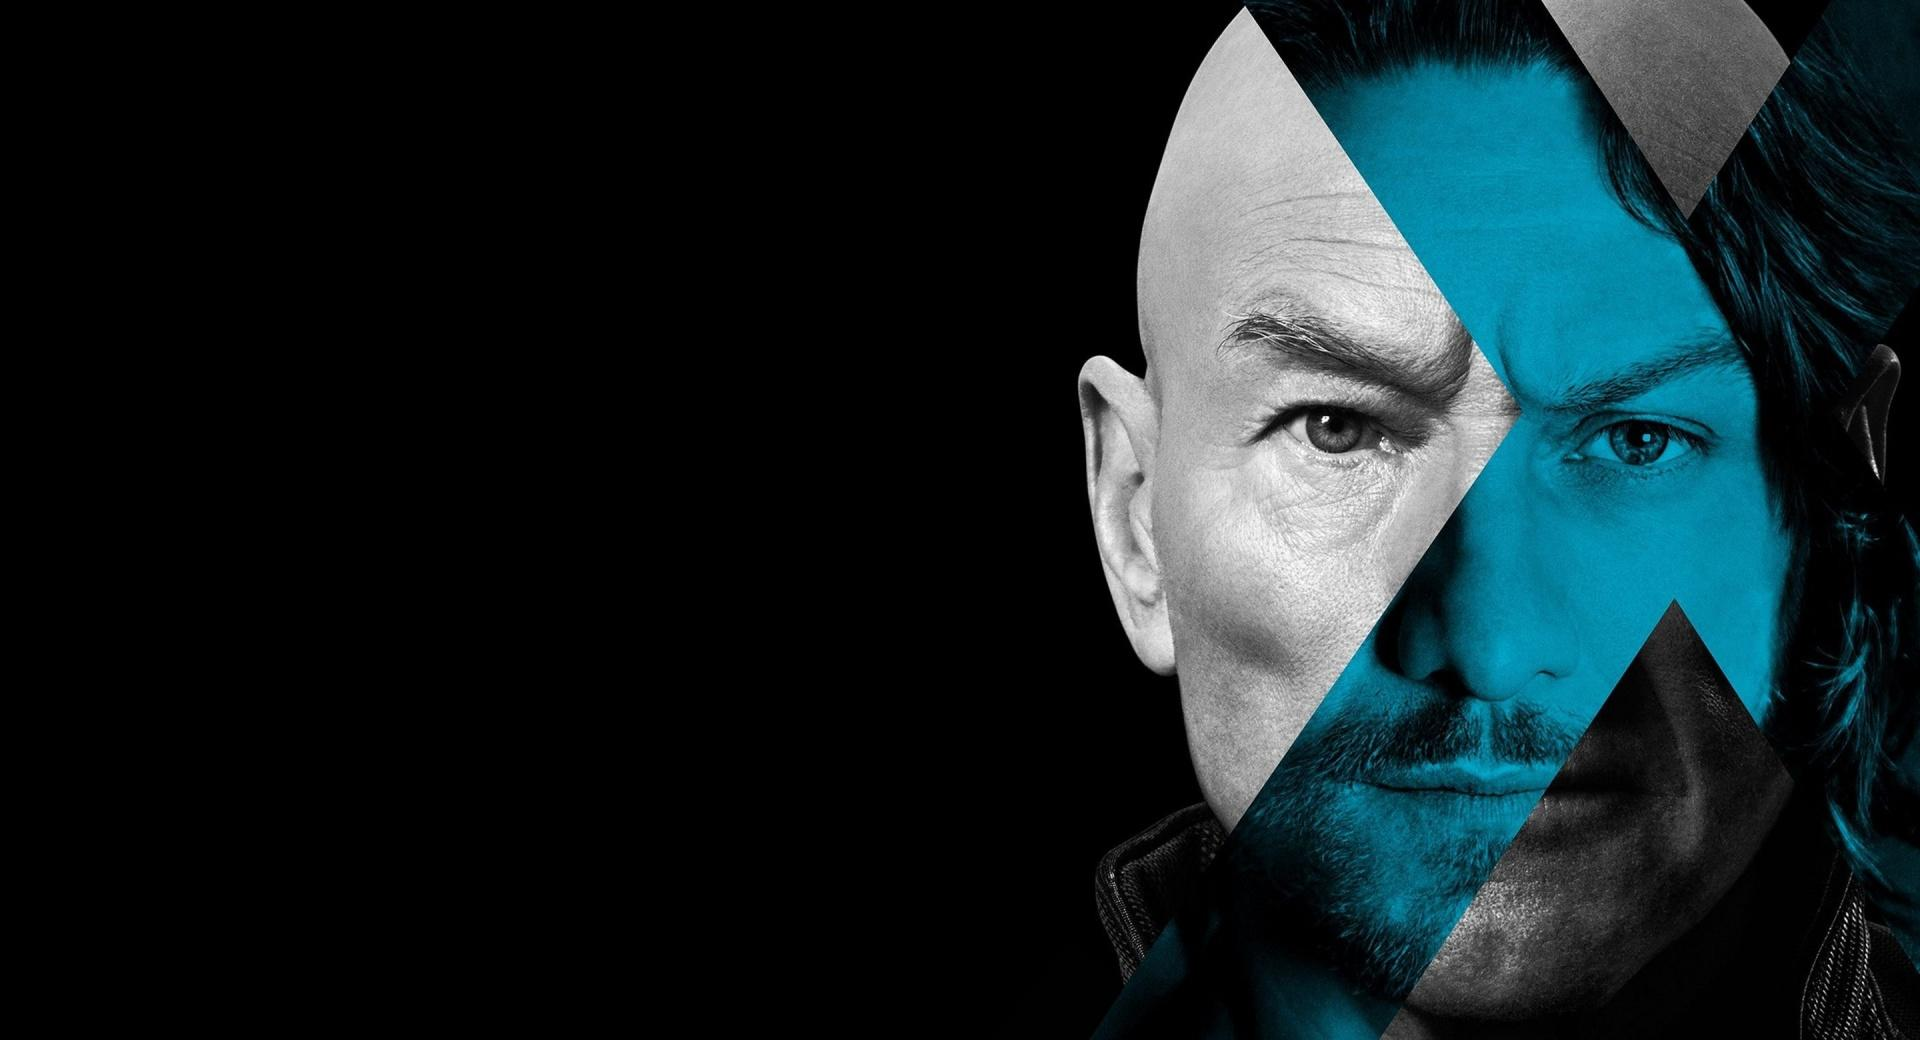 X-Men Days Of Future Past Professor X wallpapers HD quality